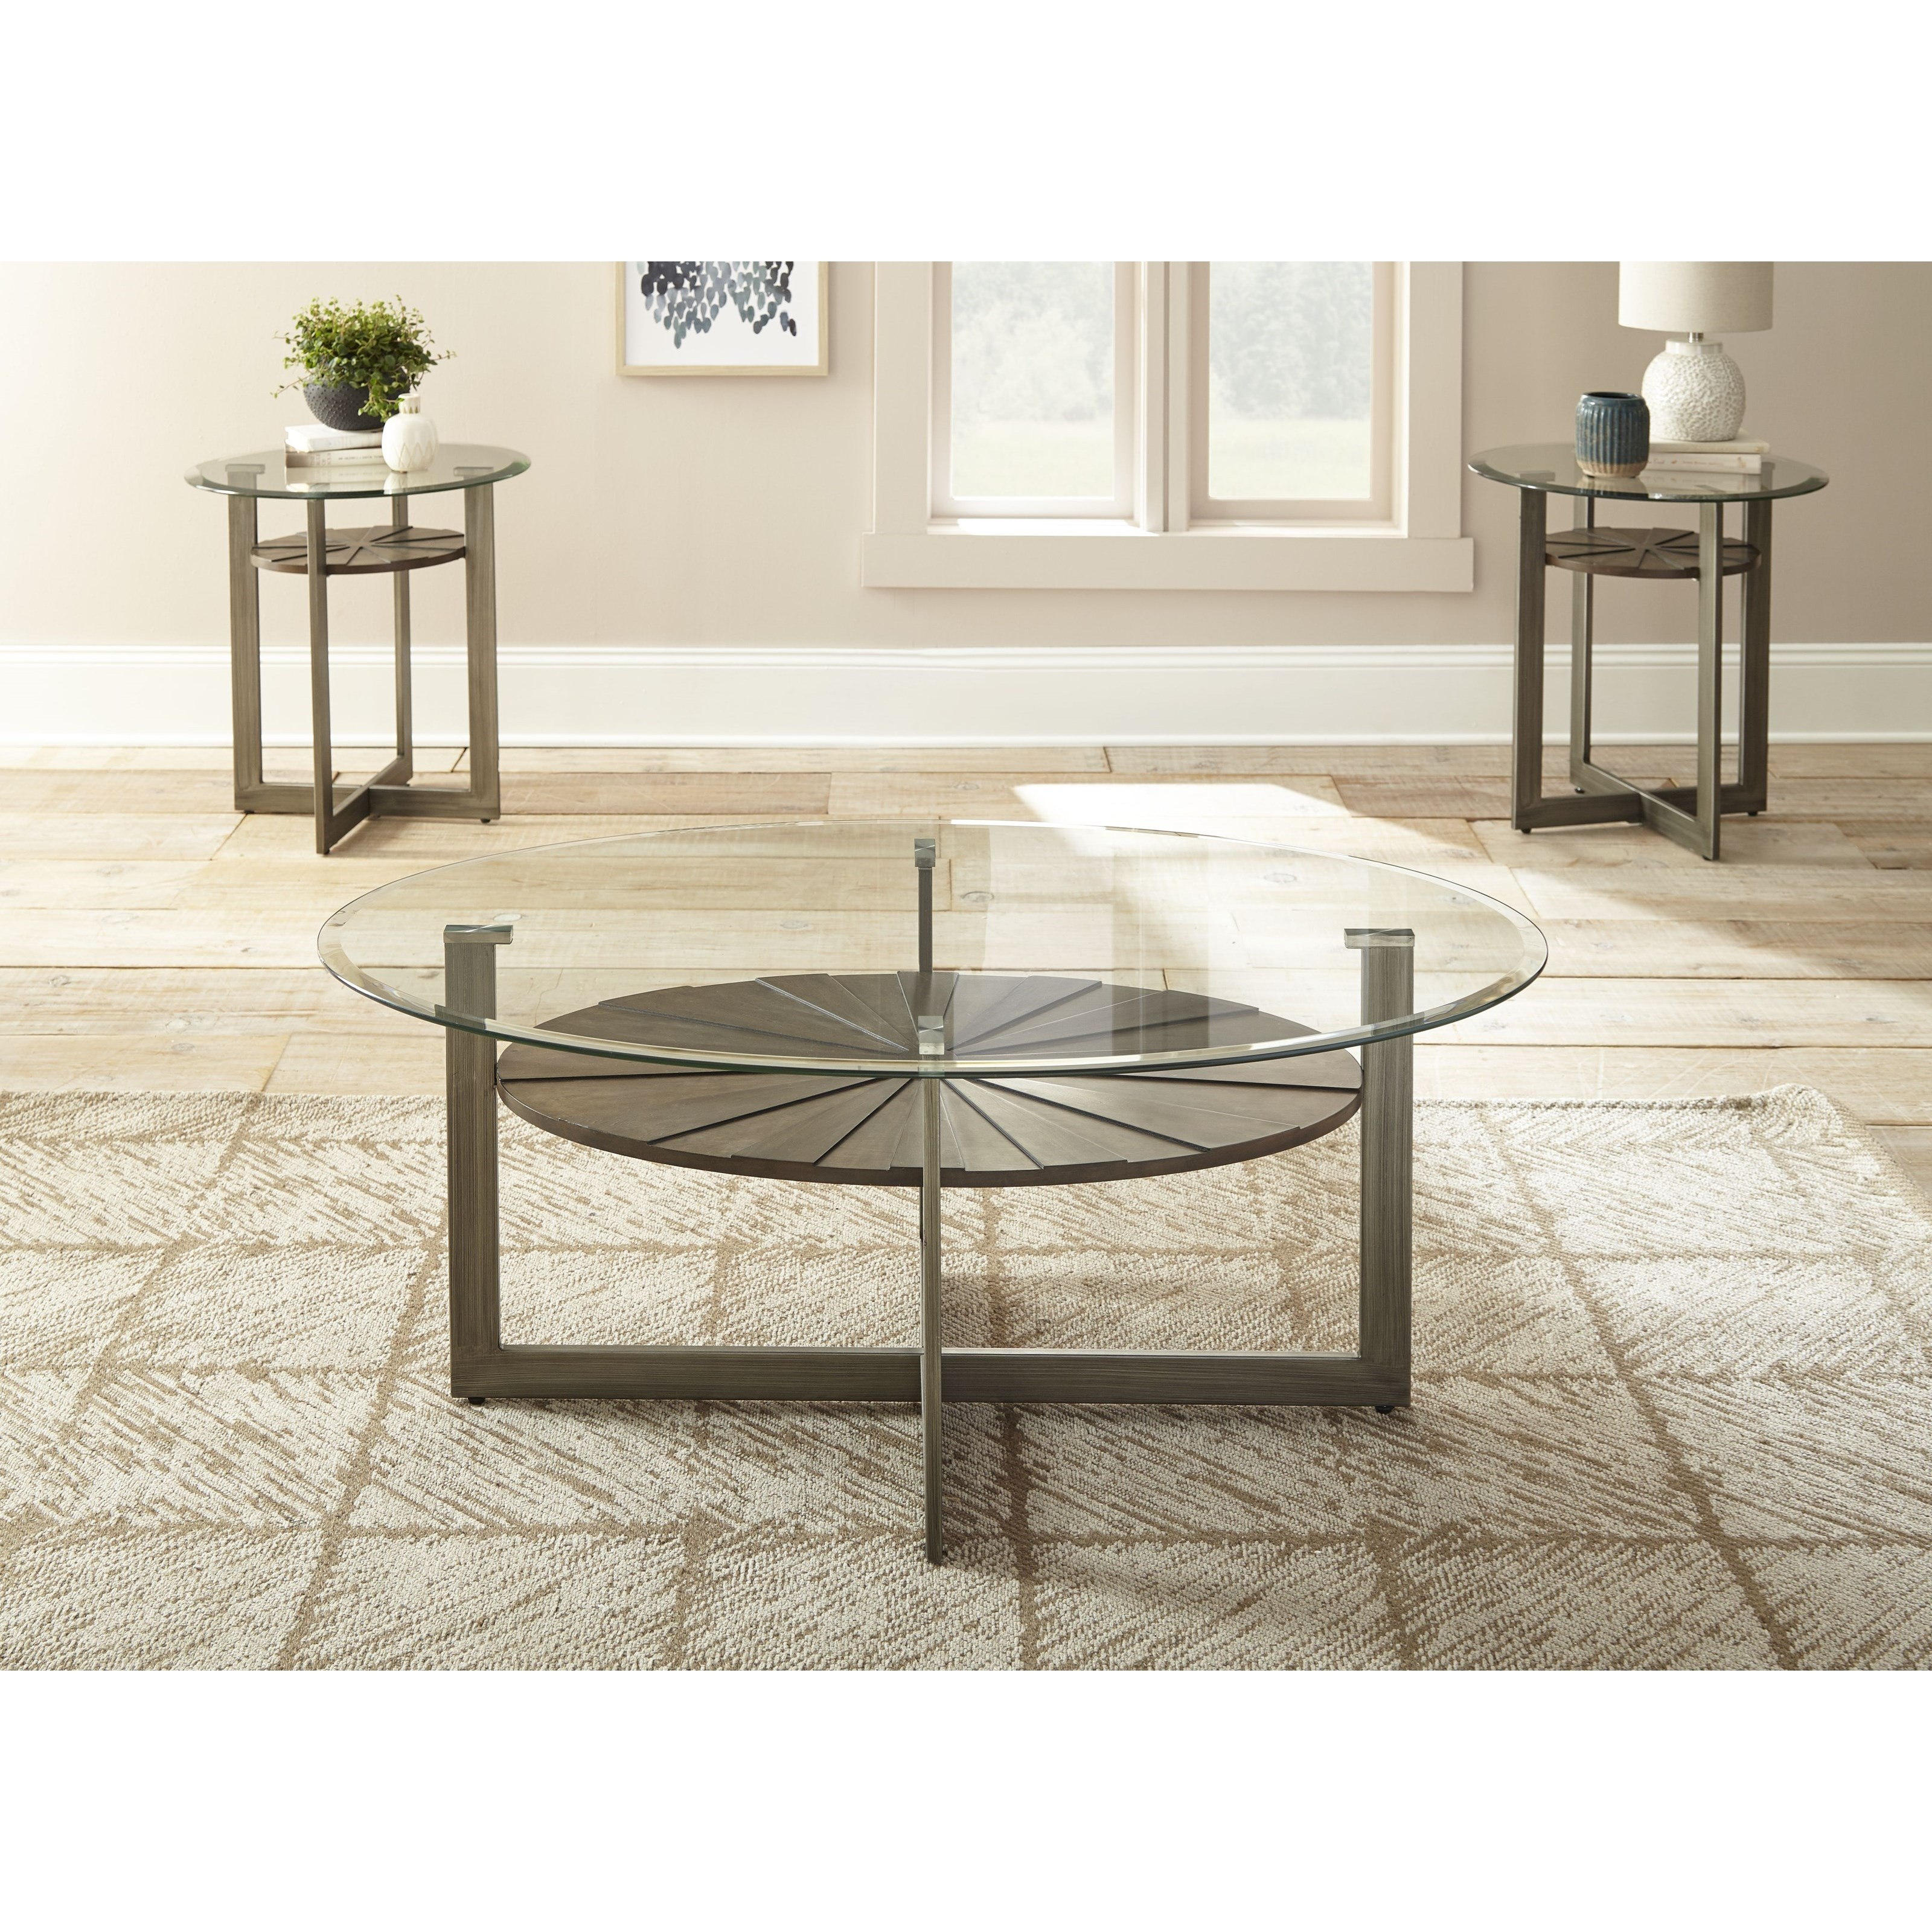 Olson SS Occasional Group 3-Pack  by Steve Silver at Walker's Furniture